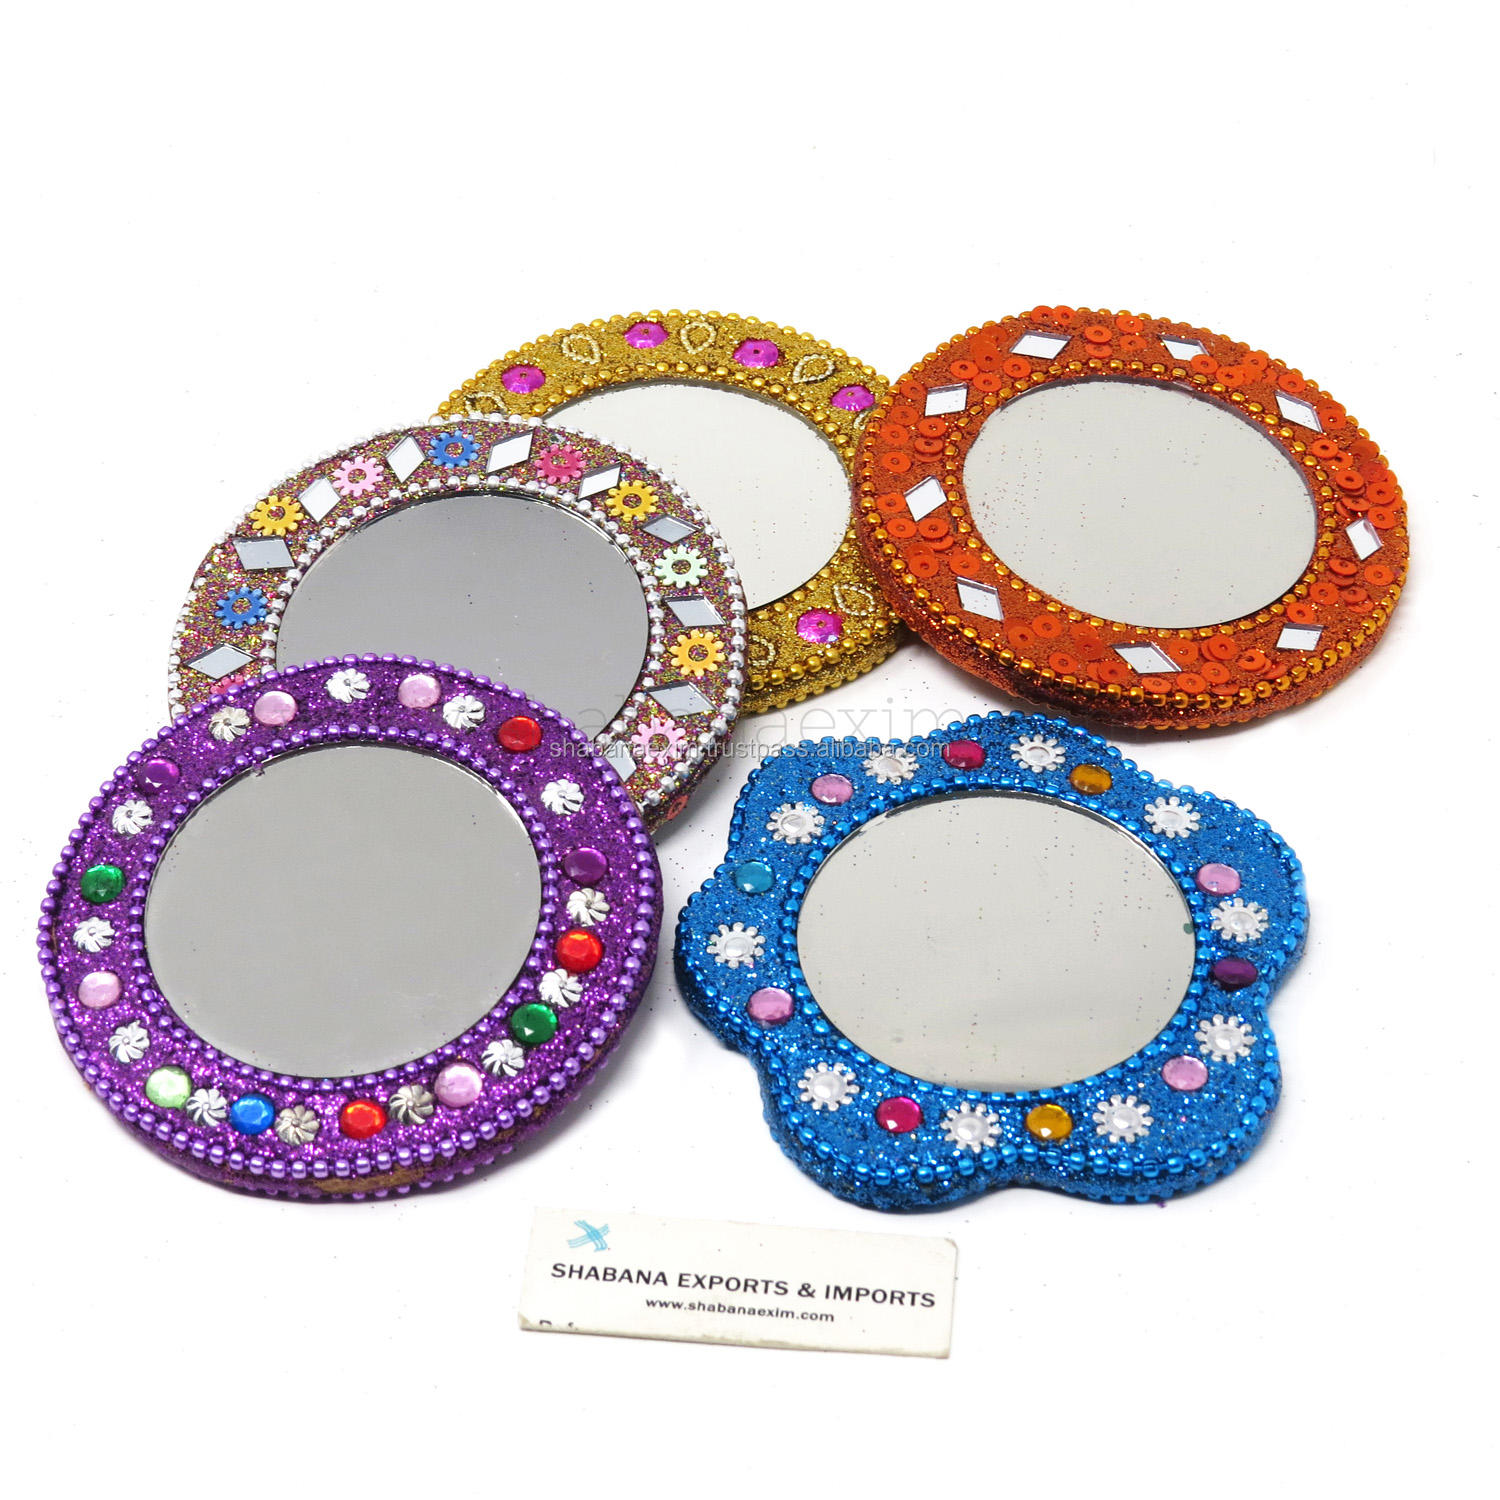 Small Look Mirror Indian Rajasthani Mirrors Single Sided Pocket Mirror